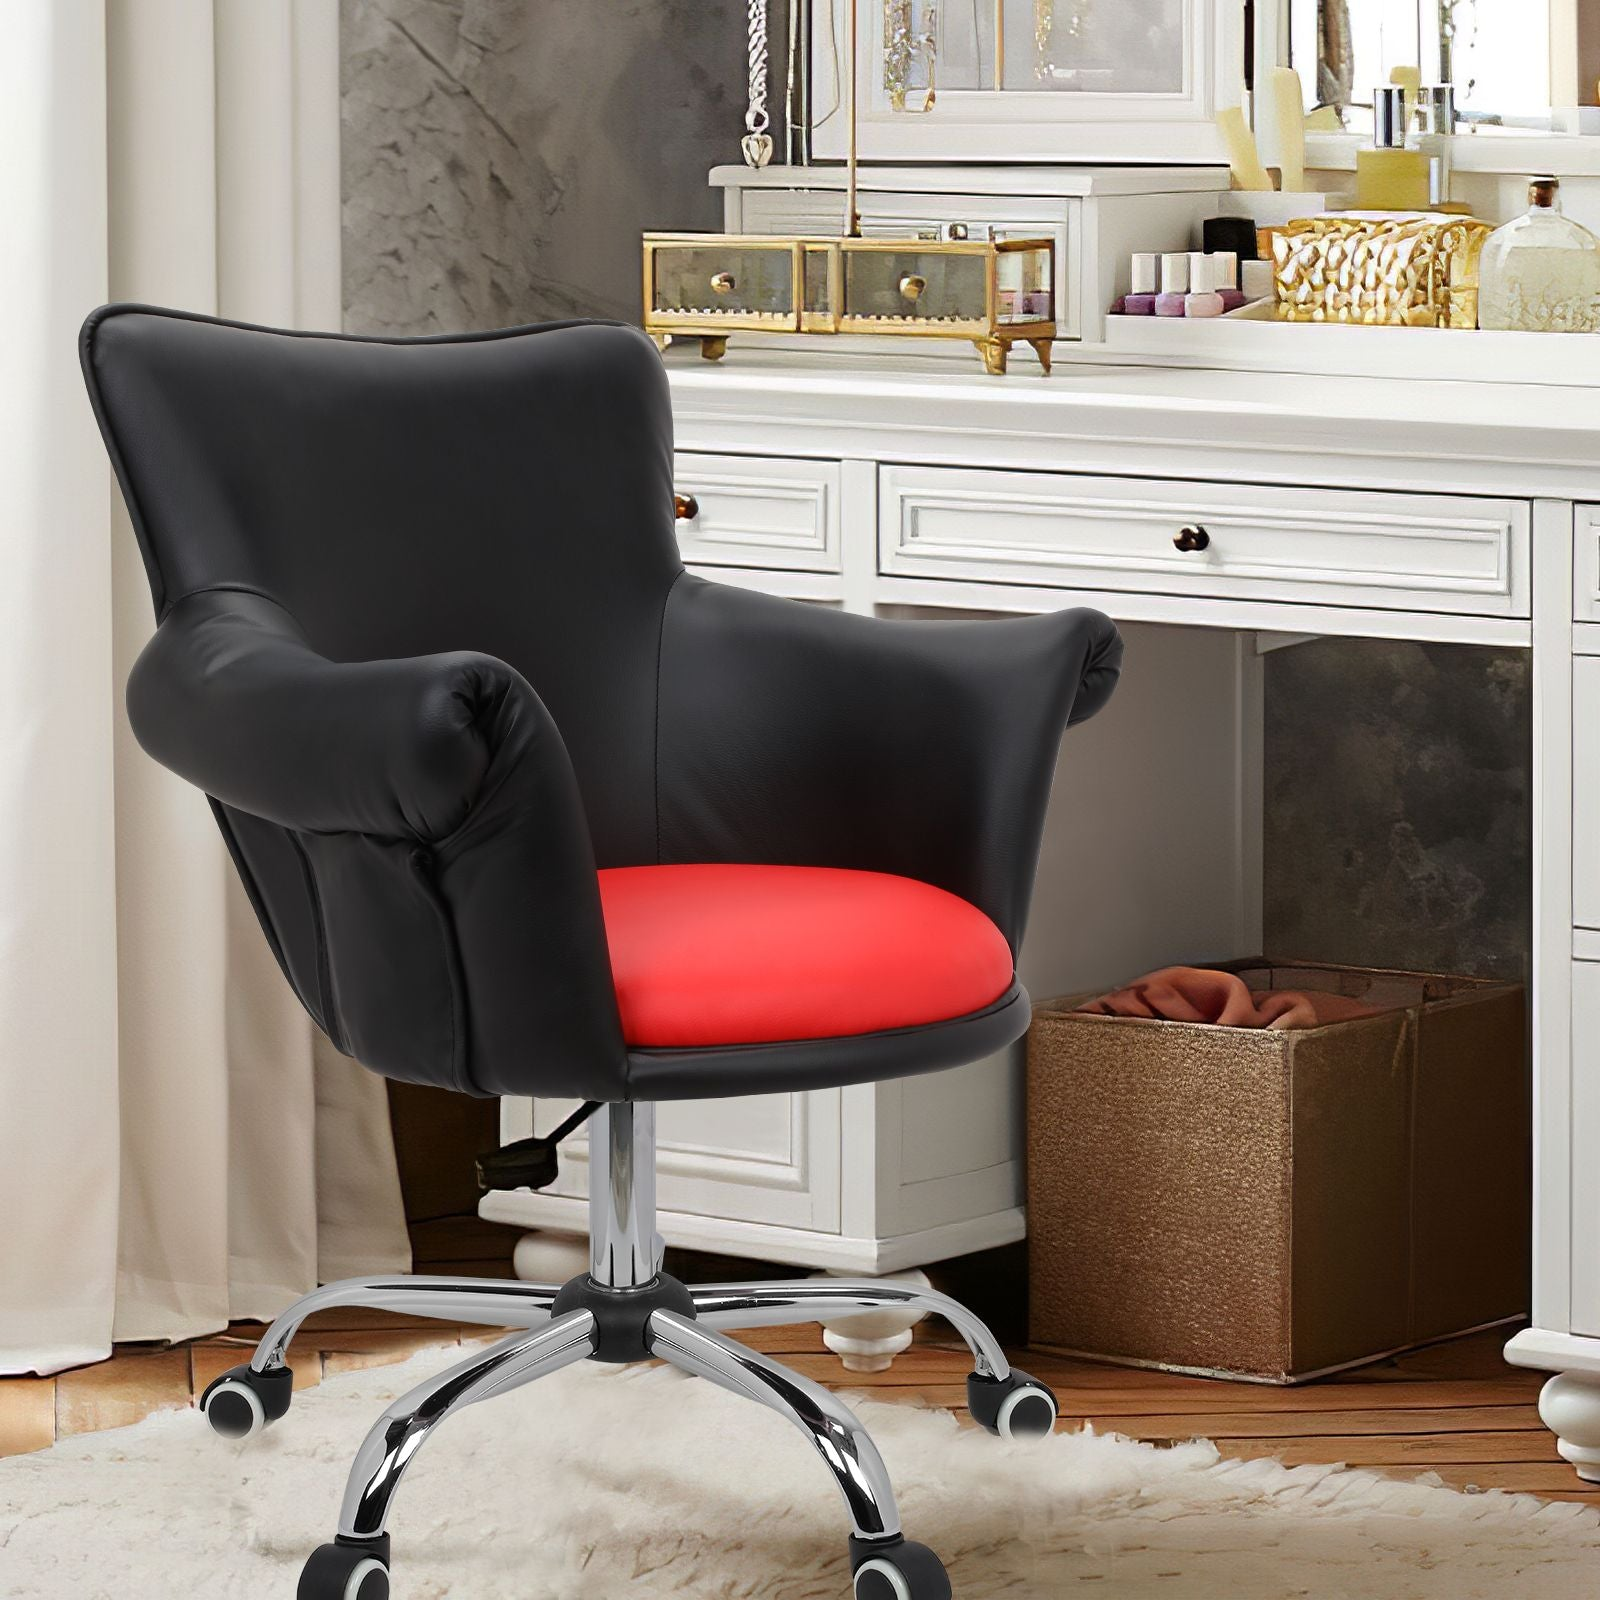 Tomato Modern Mid Back Microfiber Home Office Chair Computer Desk Chair Swivel Beauty Nail Salon Spa Vanity Seat